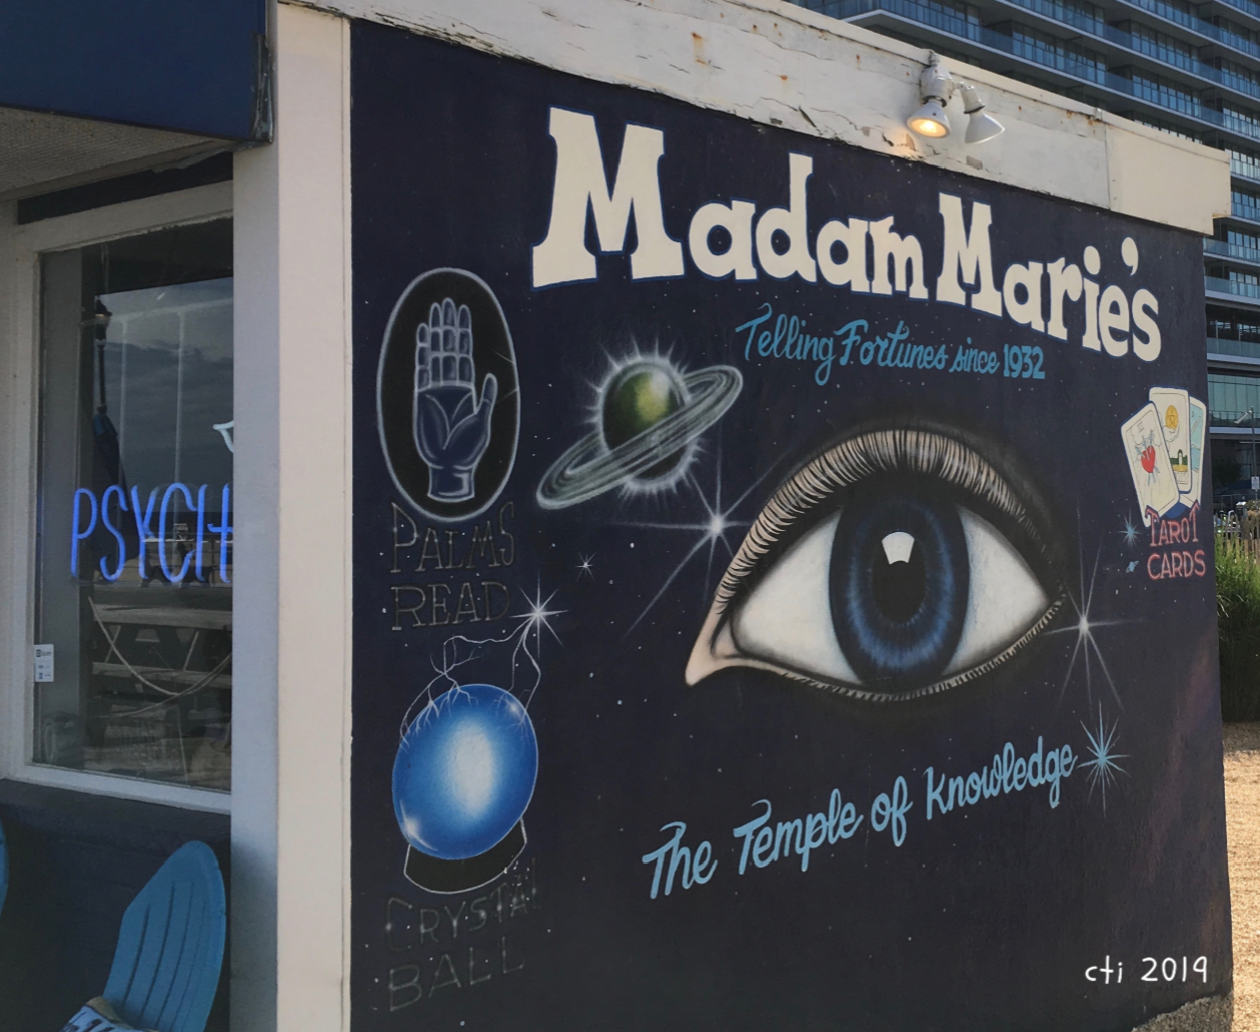 Madame Marie's in Asbury Park NJ - Photo by CTI